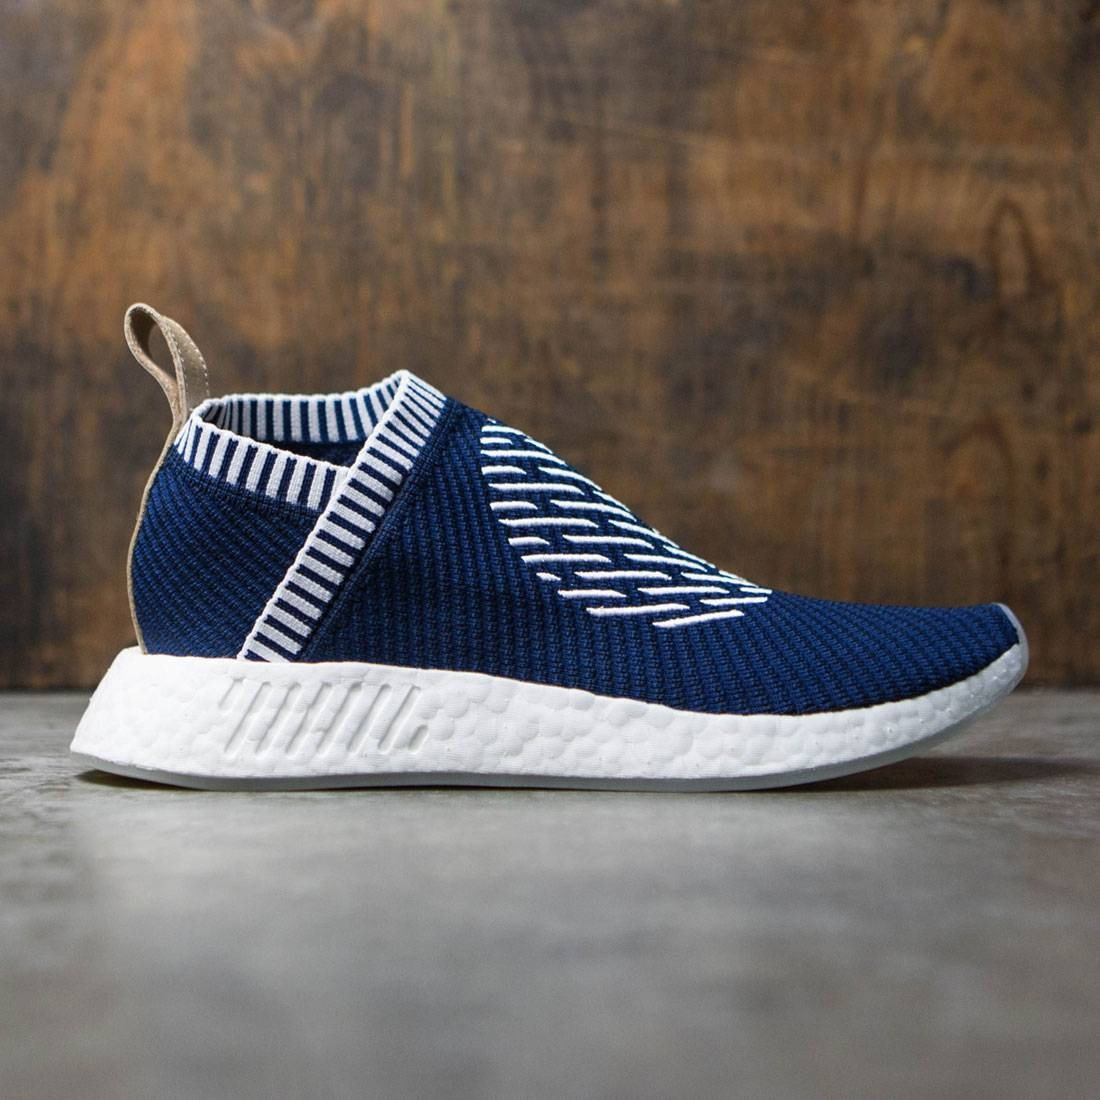 Adidas Men NMD CS2 Primeknit (navy / collegiate navy / footwear white / pale nude)